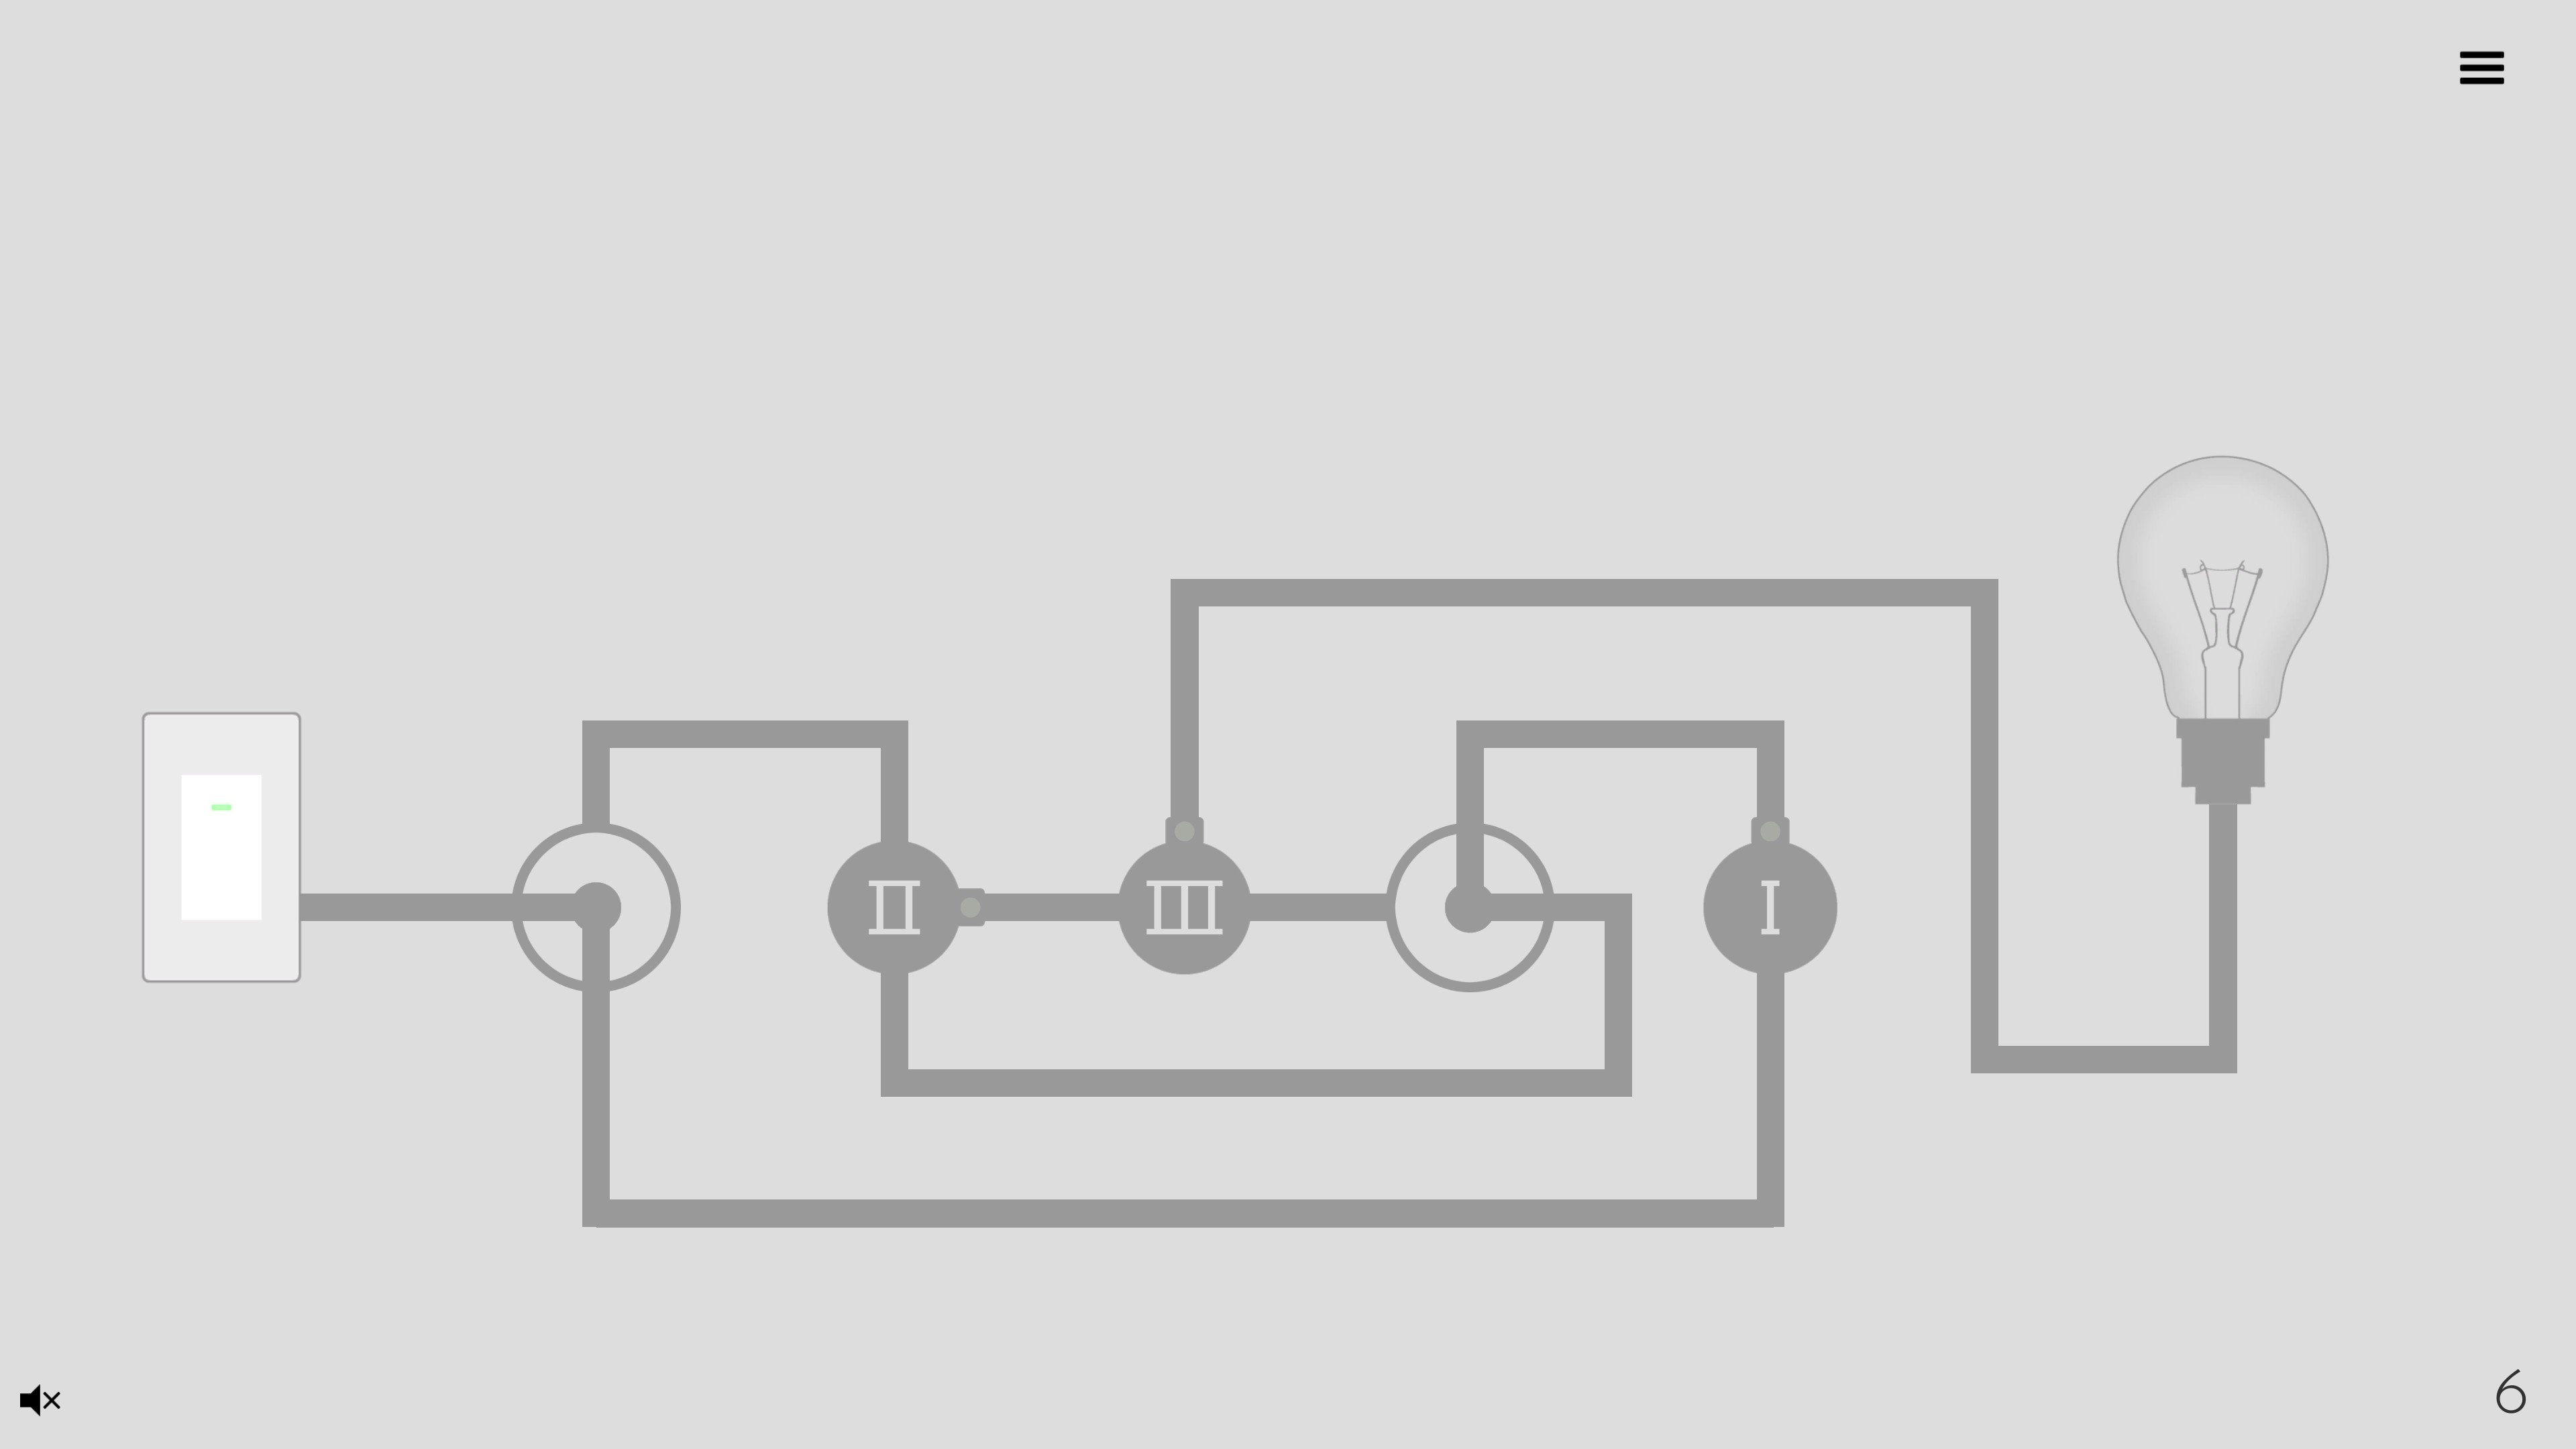 Turn on the light. A simple circuit with two dials and 3 numbered nodes, leading to a light bulb.